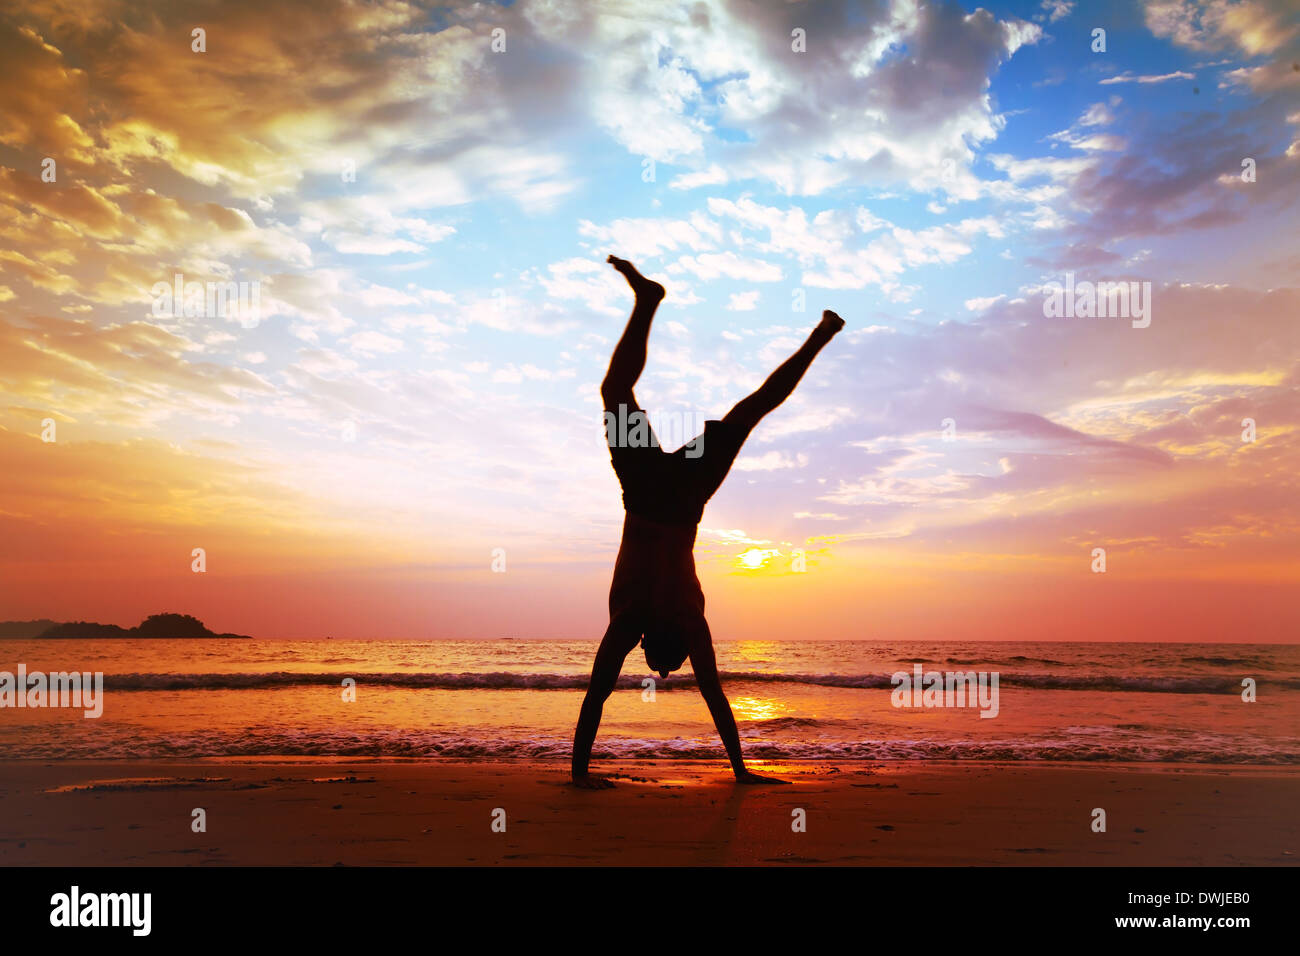 freedom and creativity, man jumping on the beach Stock Photo